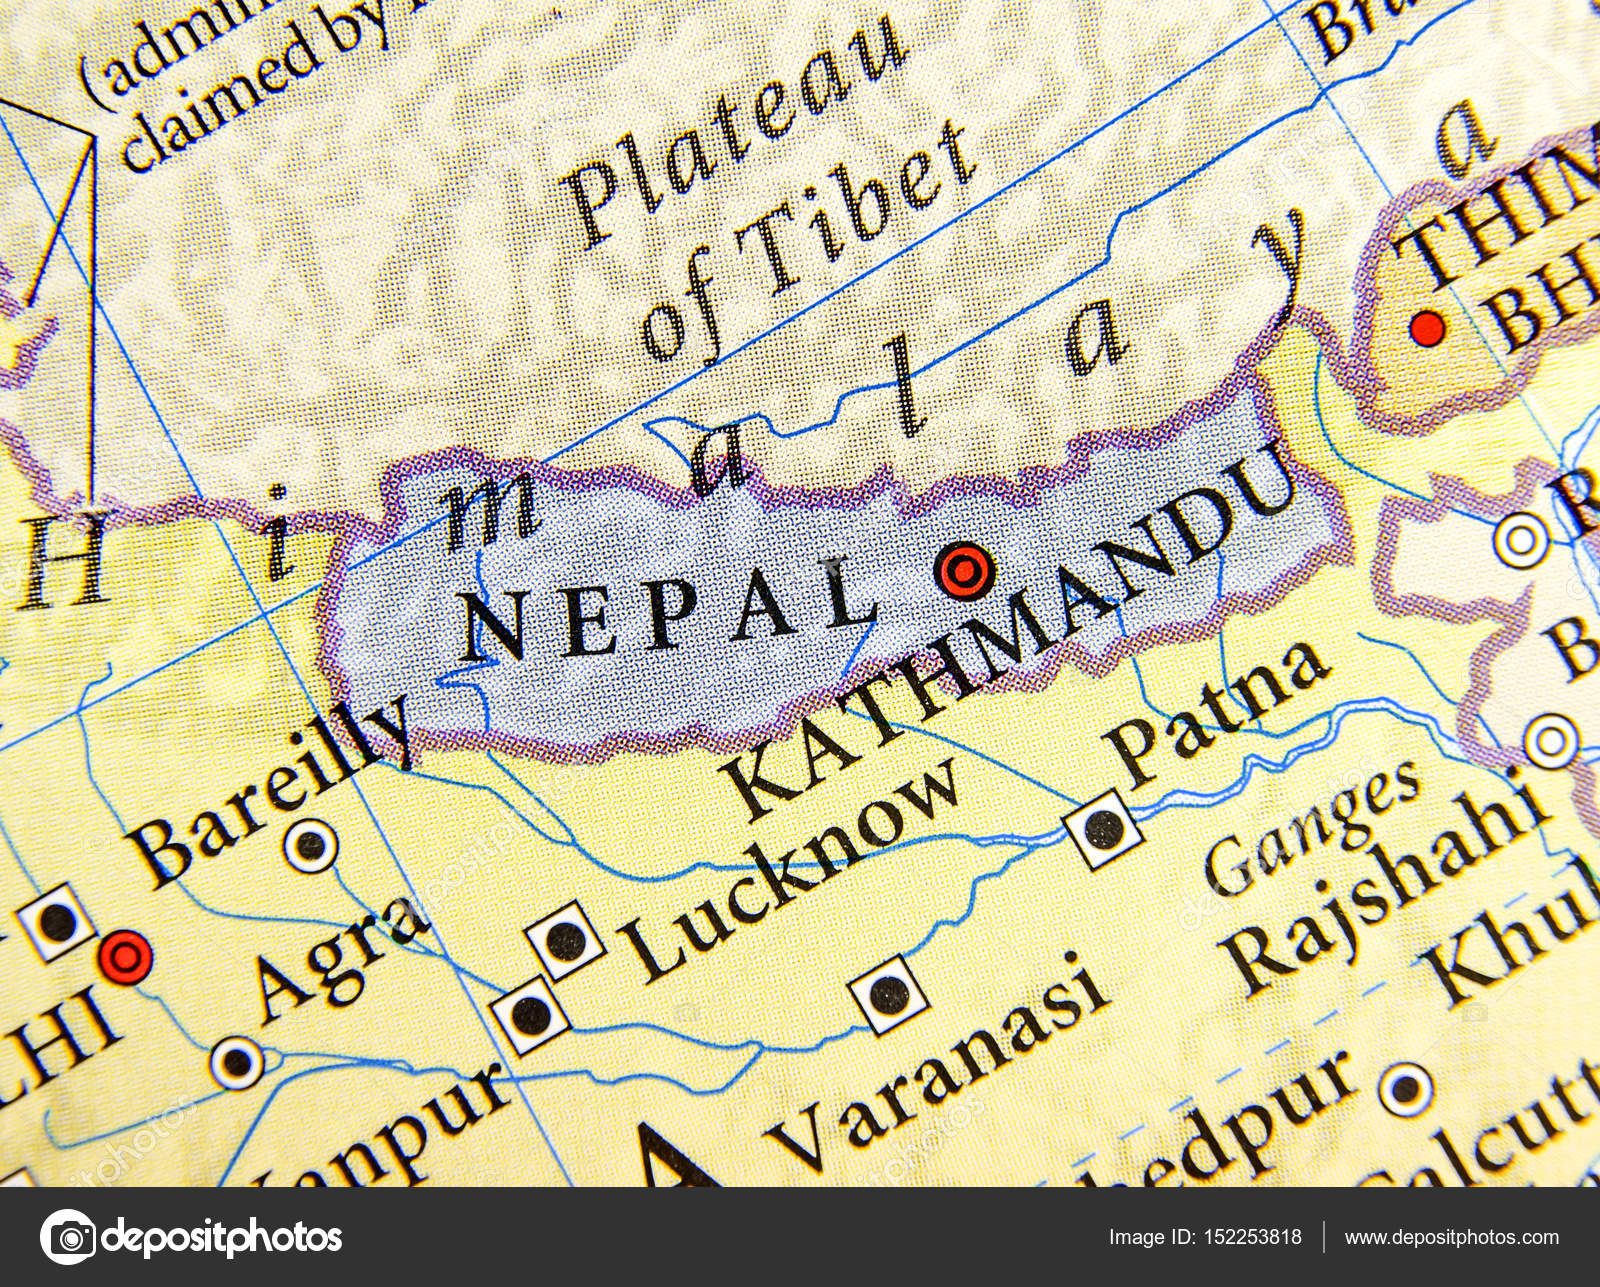 Cartina India Nepal.Geographic Map Of Nepal With Important Cities Stock Photo